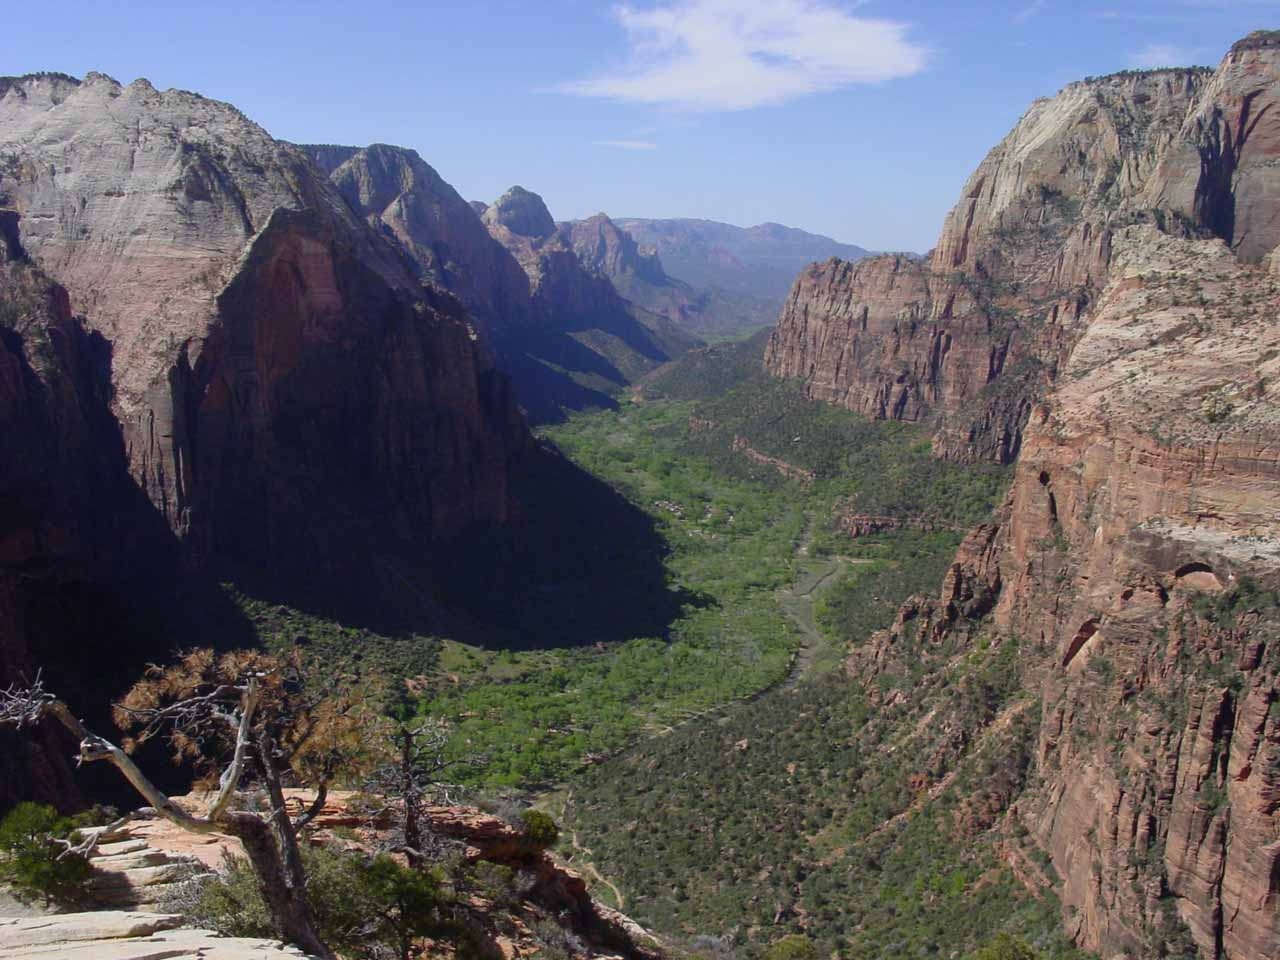 Looking into Zion Canyon from the summit of Angels Landing